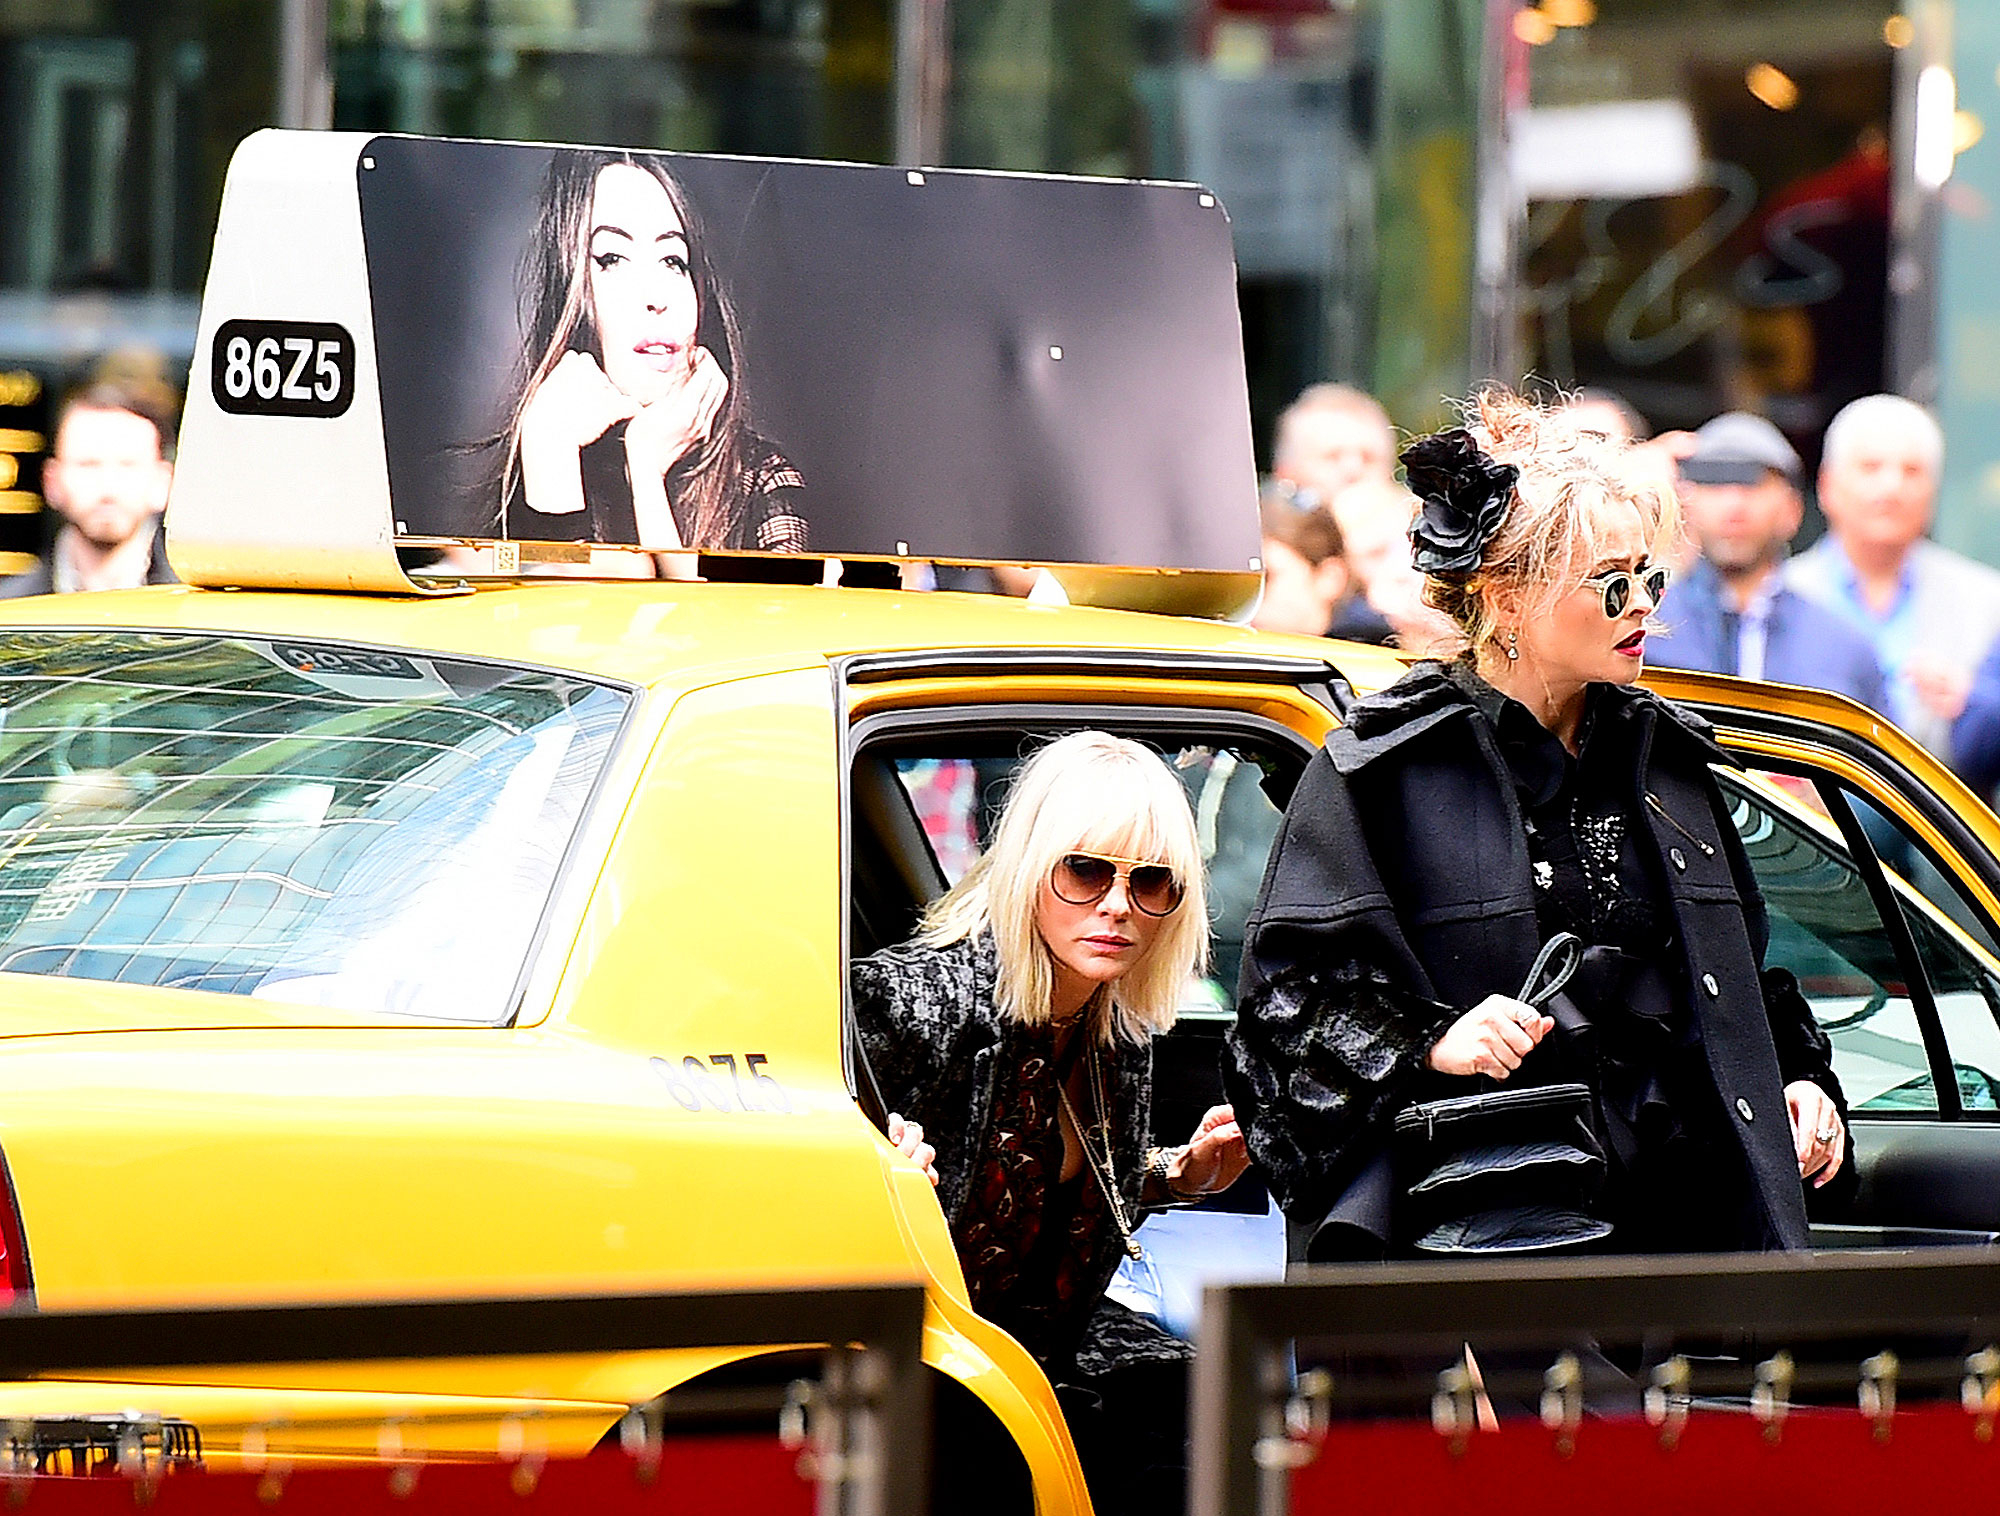 Cate Blanchett and Helena Bonham Carter are seen on the set of 'Ocean's 8' on October 26, 2016 in New York City.